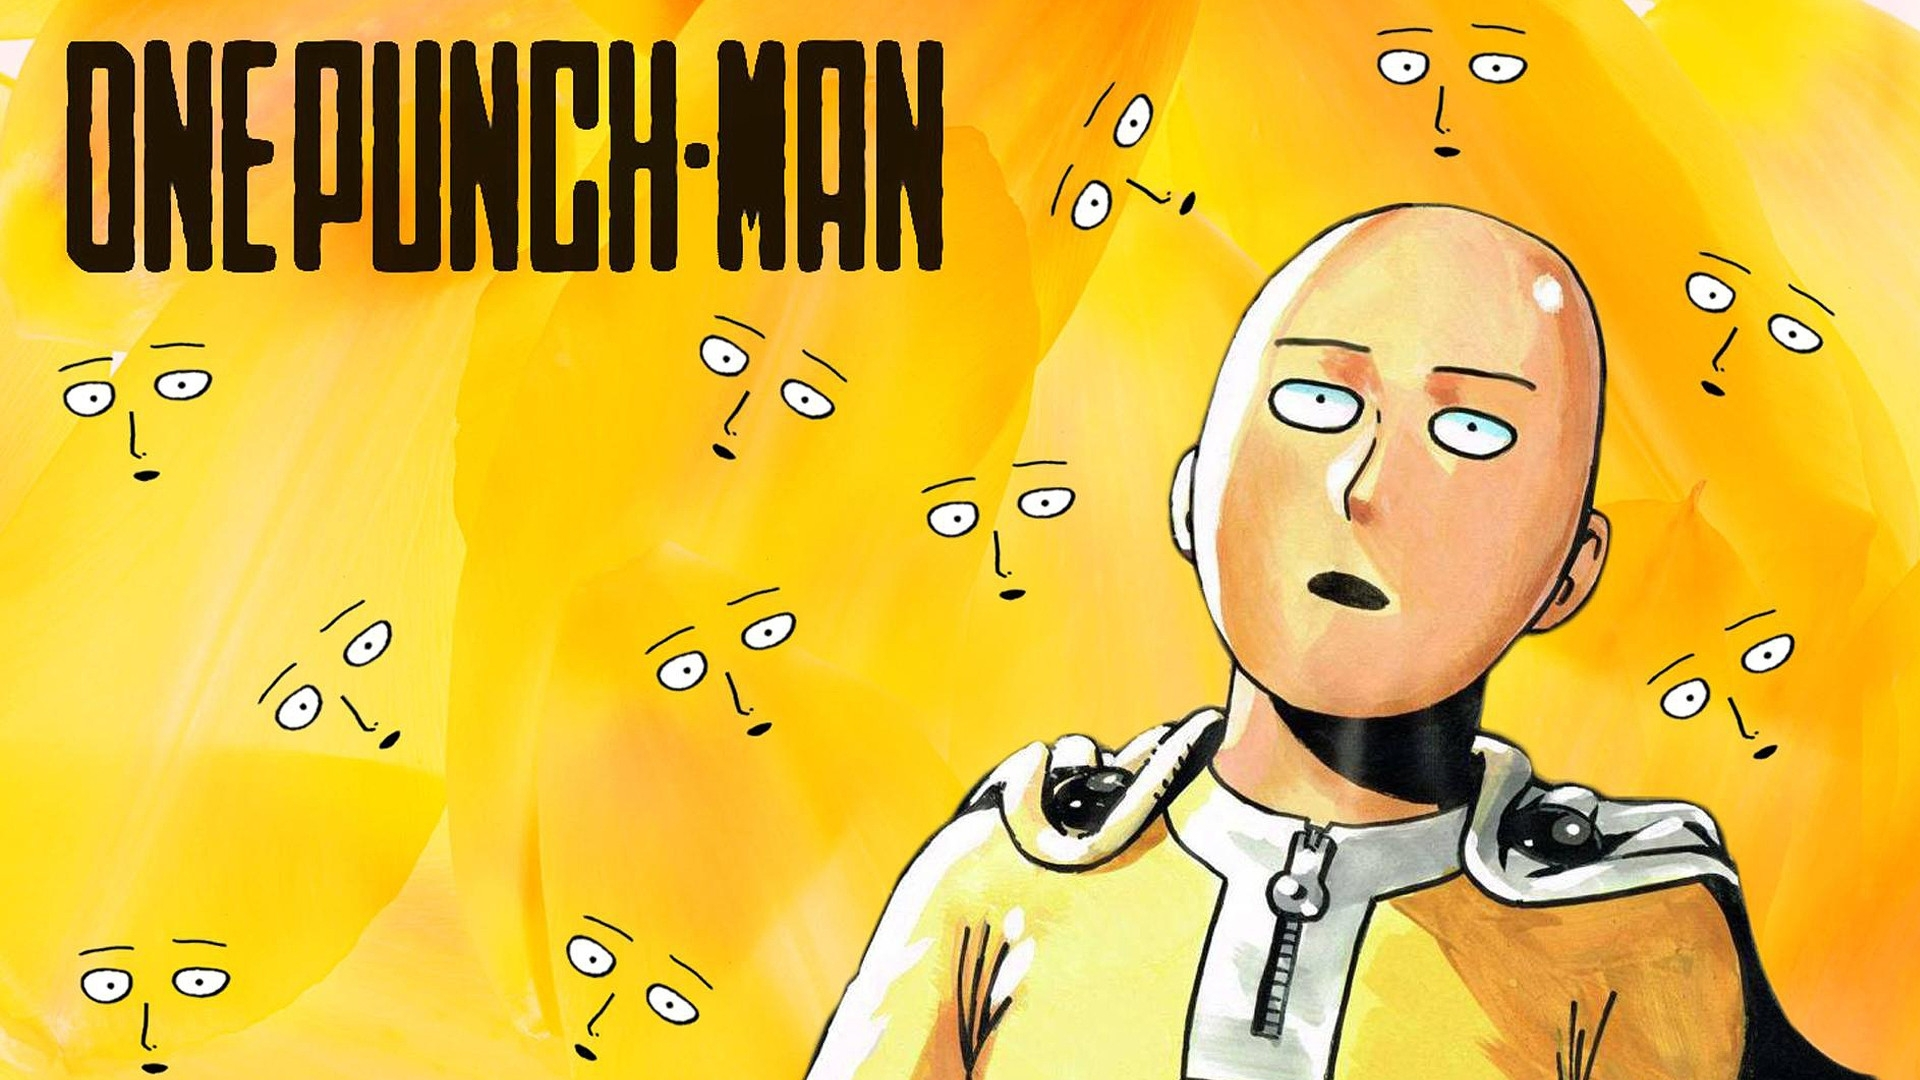 one-punch man hd wallpaper | 1920x1080 | id:56055 - wallpapervortex